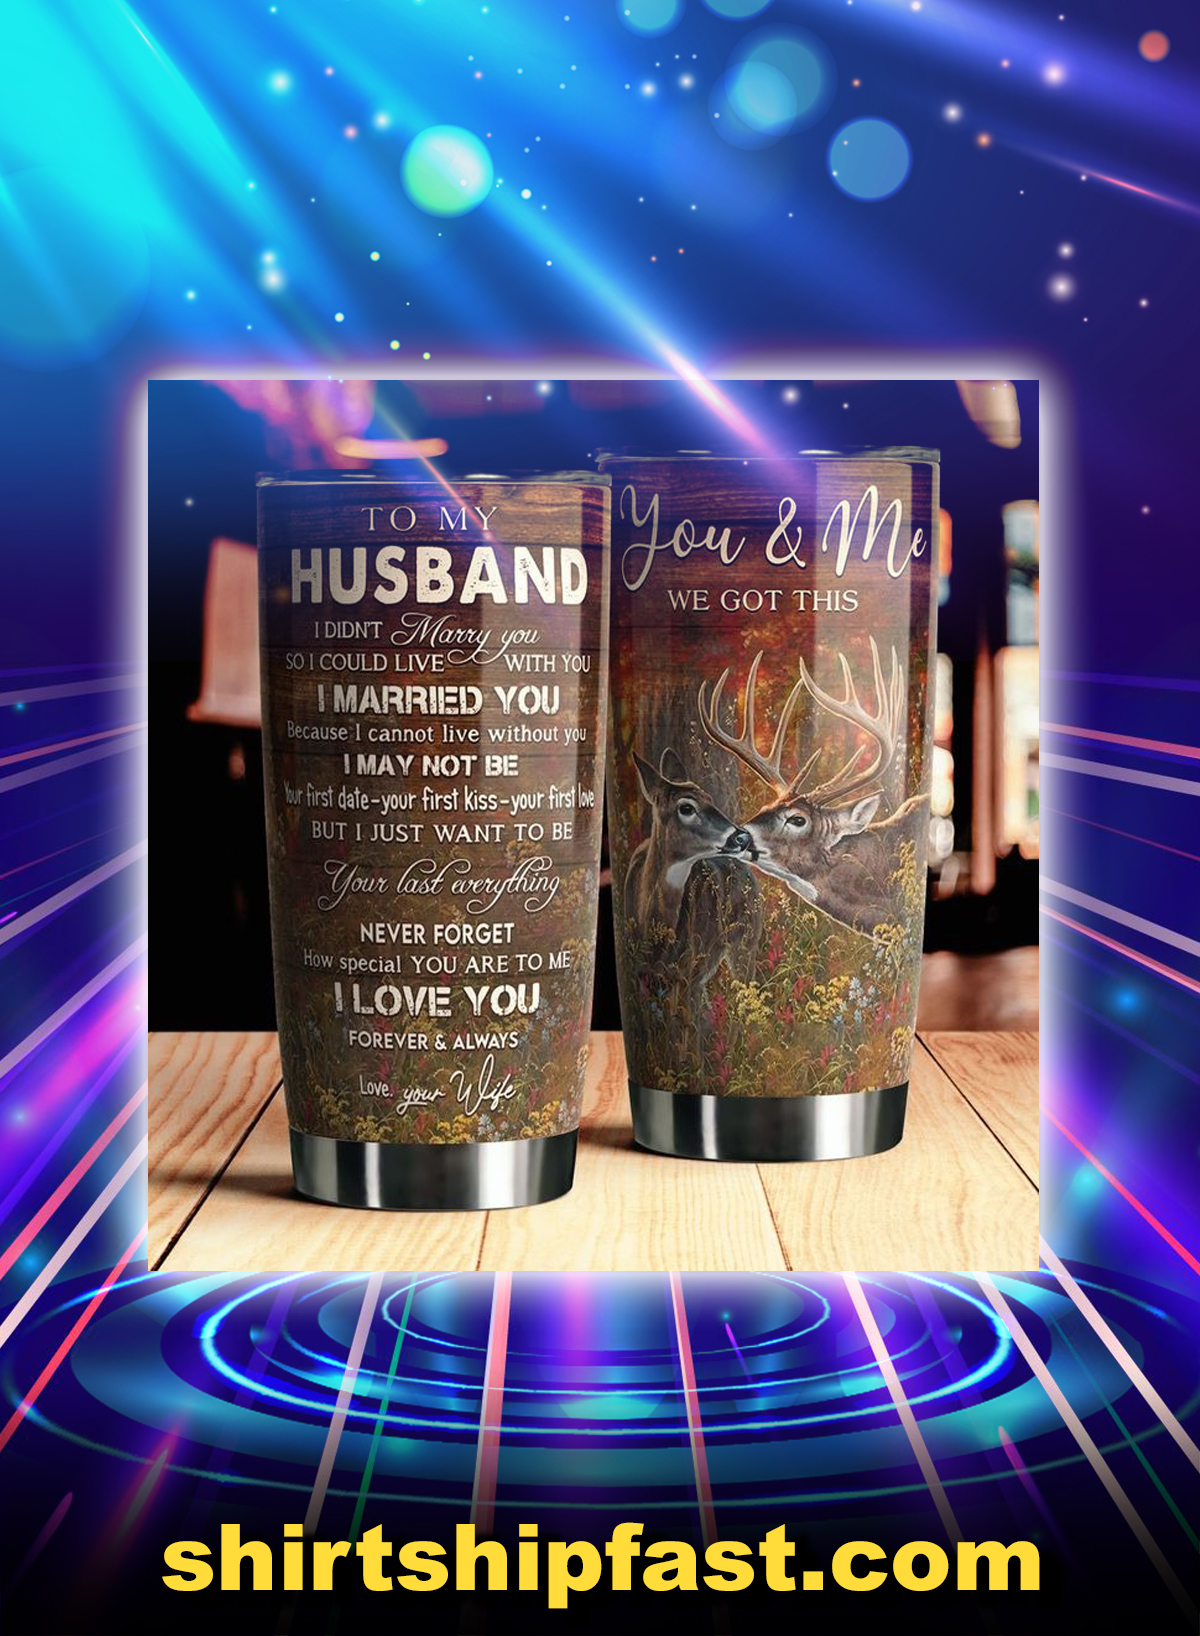 Deer to my husband your wife you and me we got this tumbler